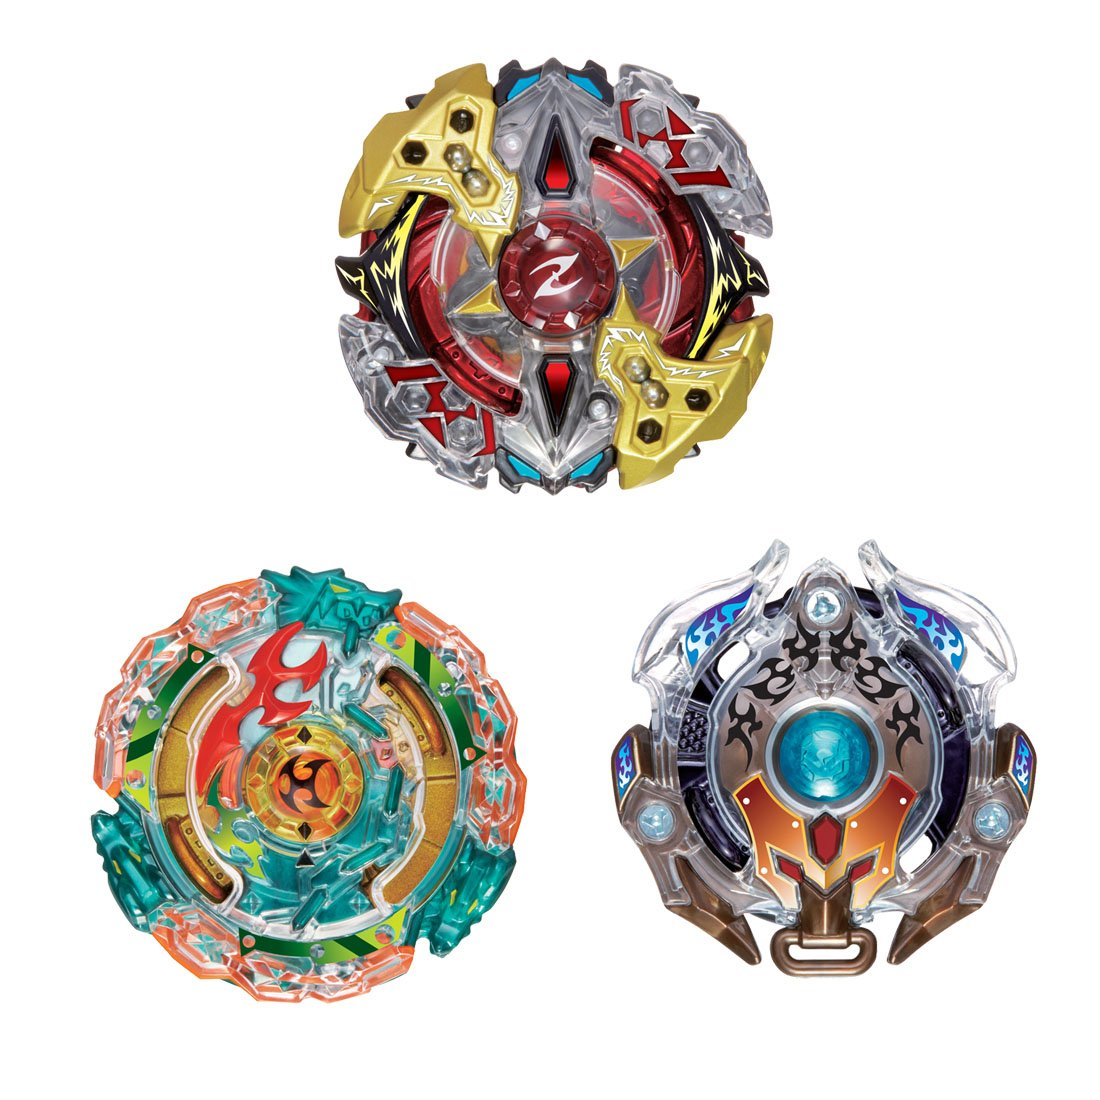 Takara Tomy B 90 Beyblade Burst 3On3 Stamina Attack Battle Booster Set Spinning Top